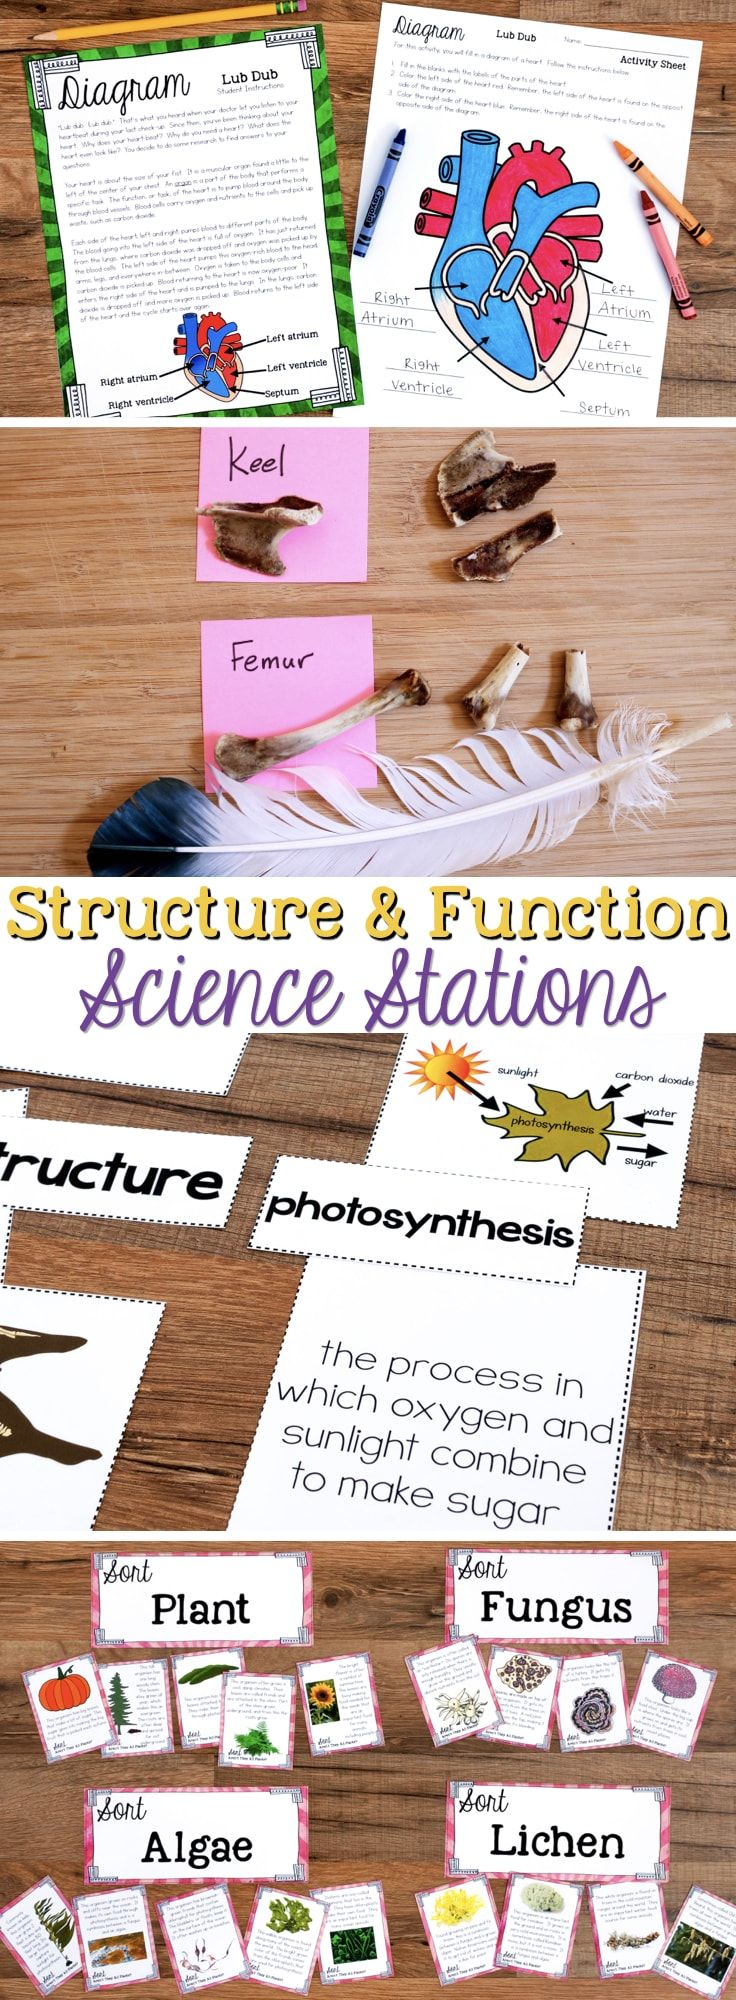 Structure and Function Science Stations cover NGSS 4-LS1.A and focuses on how organisms live, behave, reproduce, and grow. Included are concepts such structure and function of flowers, belly buttons, muscular and skeletal systems, bird structures to support flight, the human heart, trees, animals in arctic areas, leaves, and other organisms.